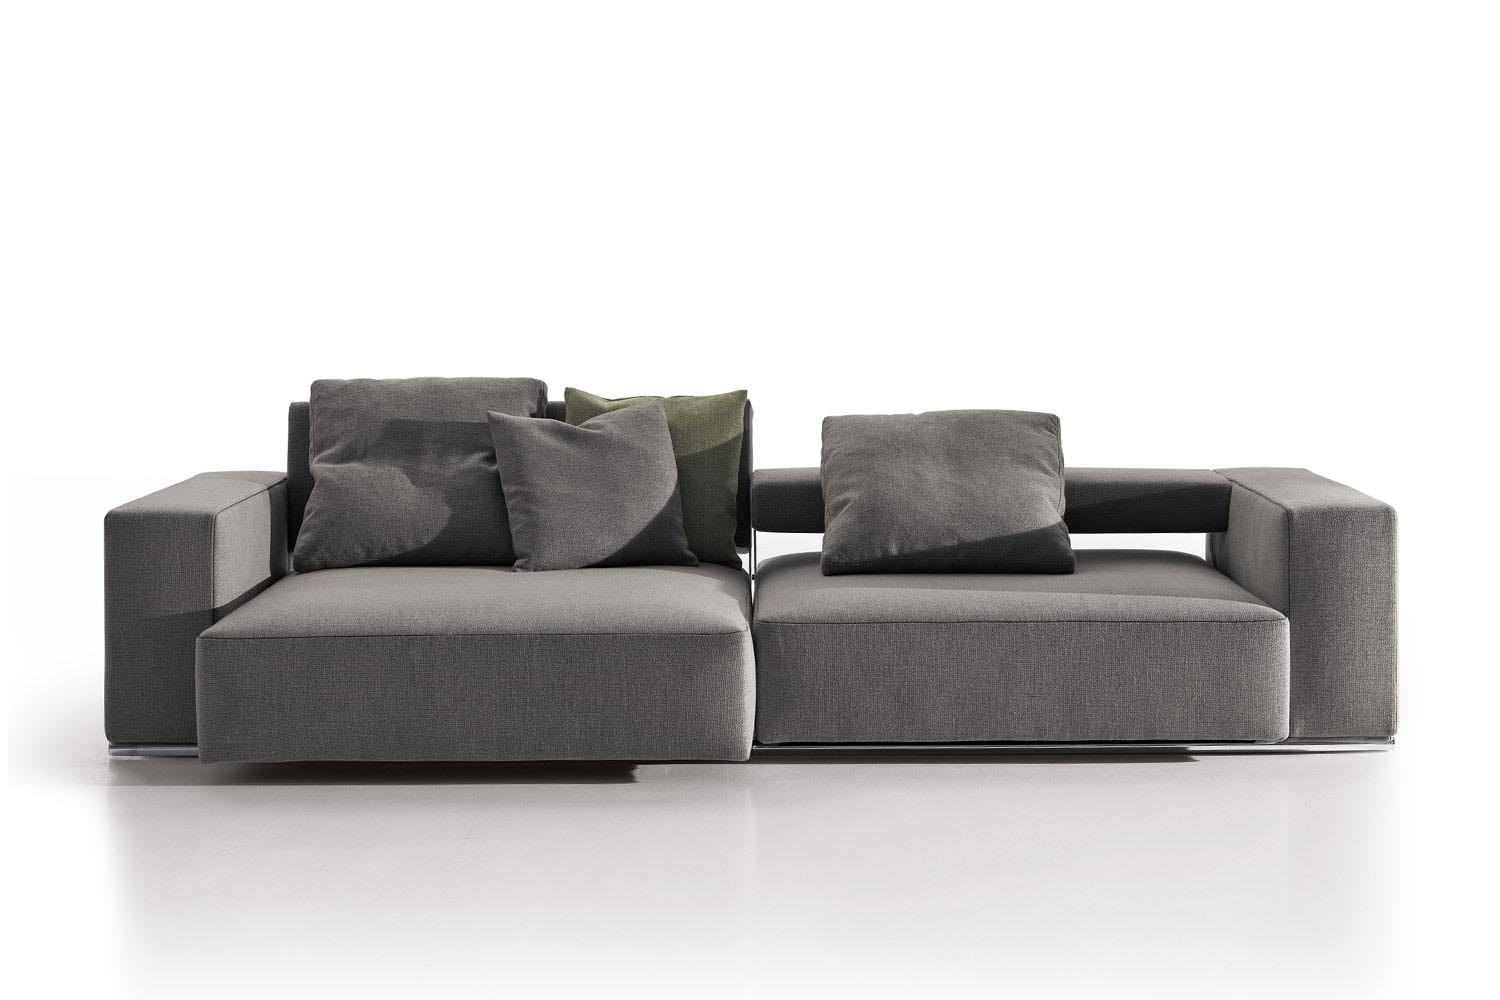 Andy '13 Sofa by Paolo Piva for B&B Italia